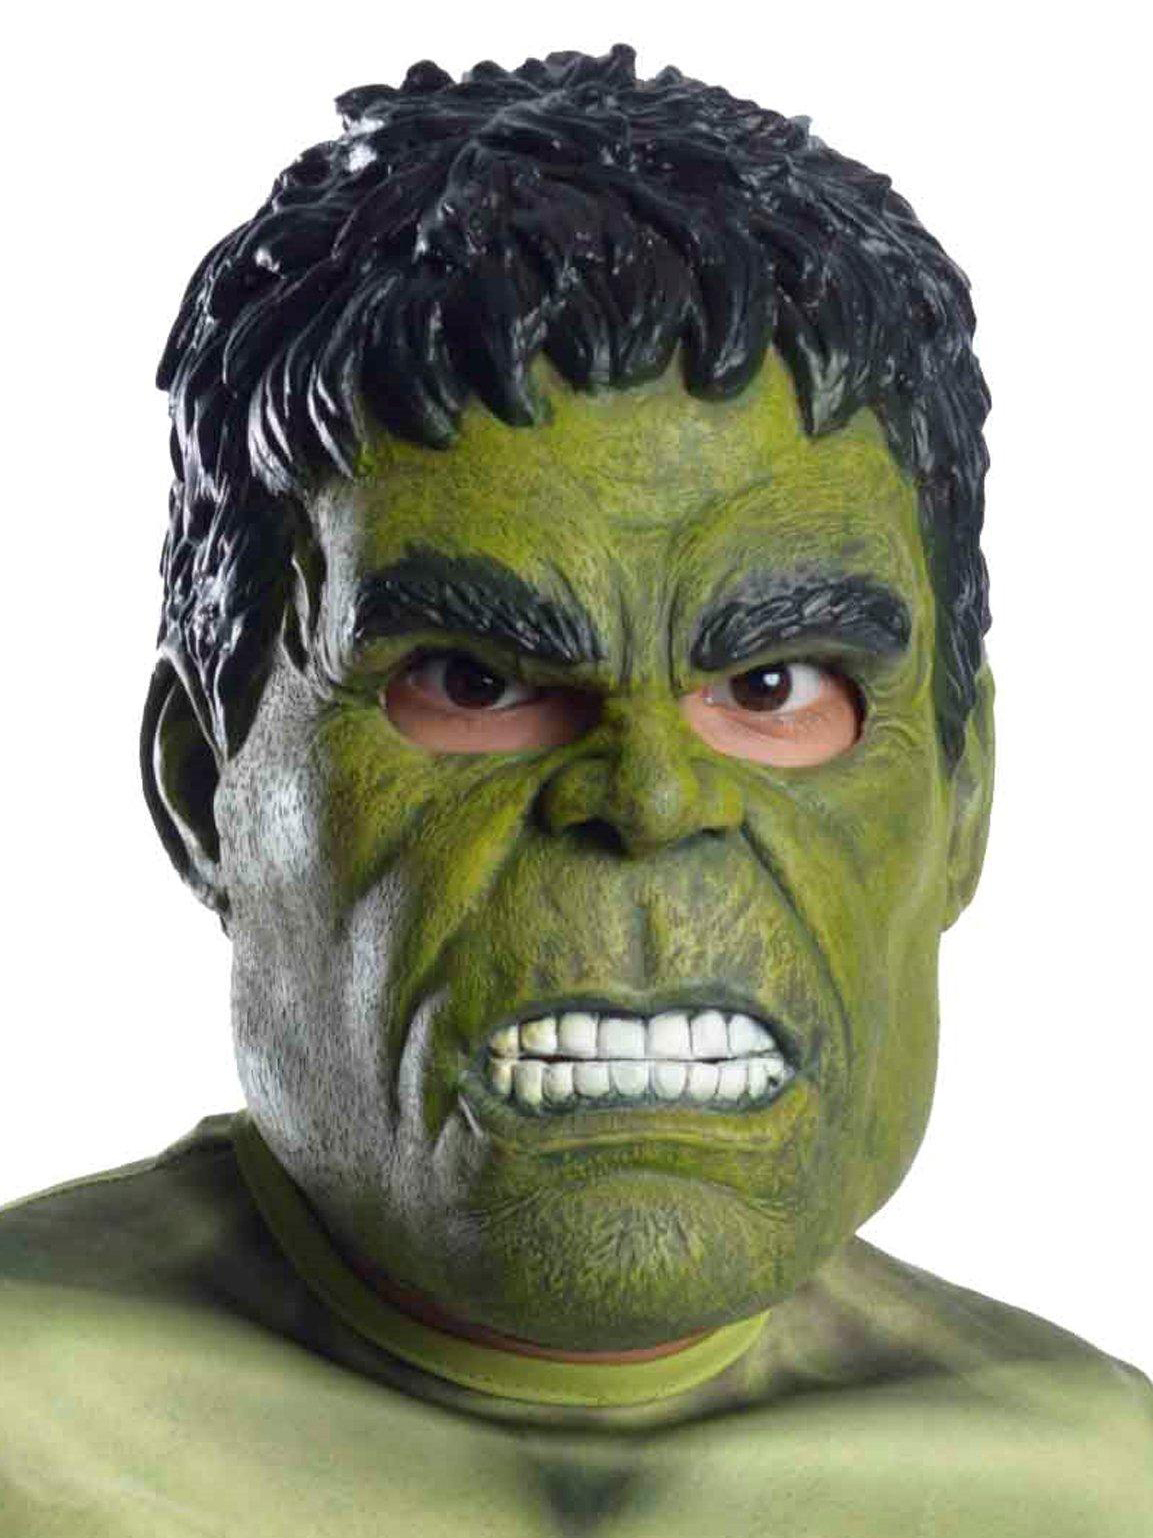 Avengers 2 - Age Of Ultron: The Hulk 3/4 Mask For Kids 36244R